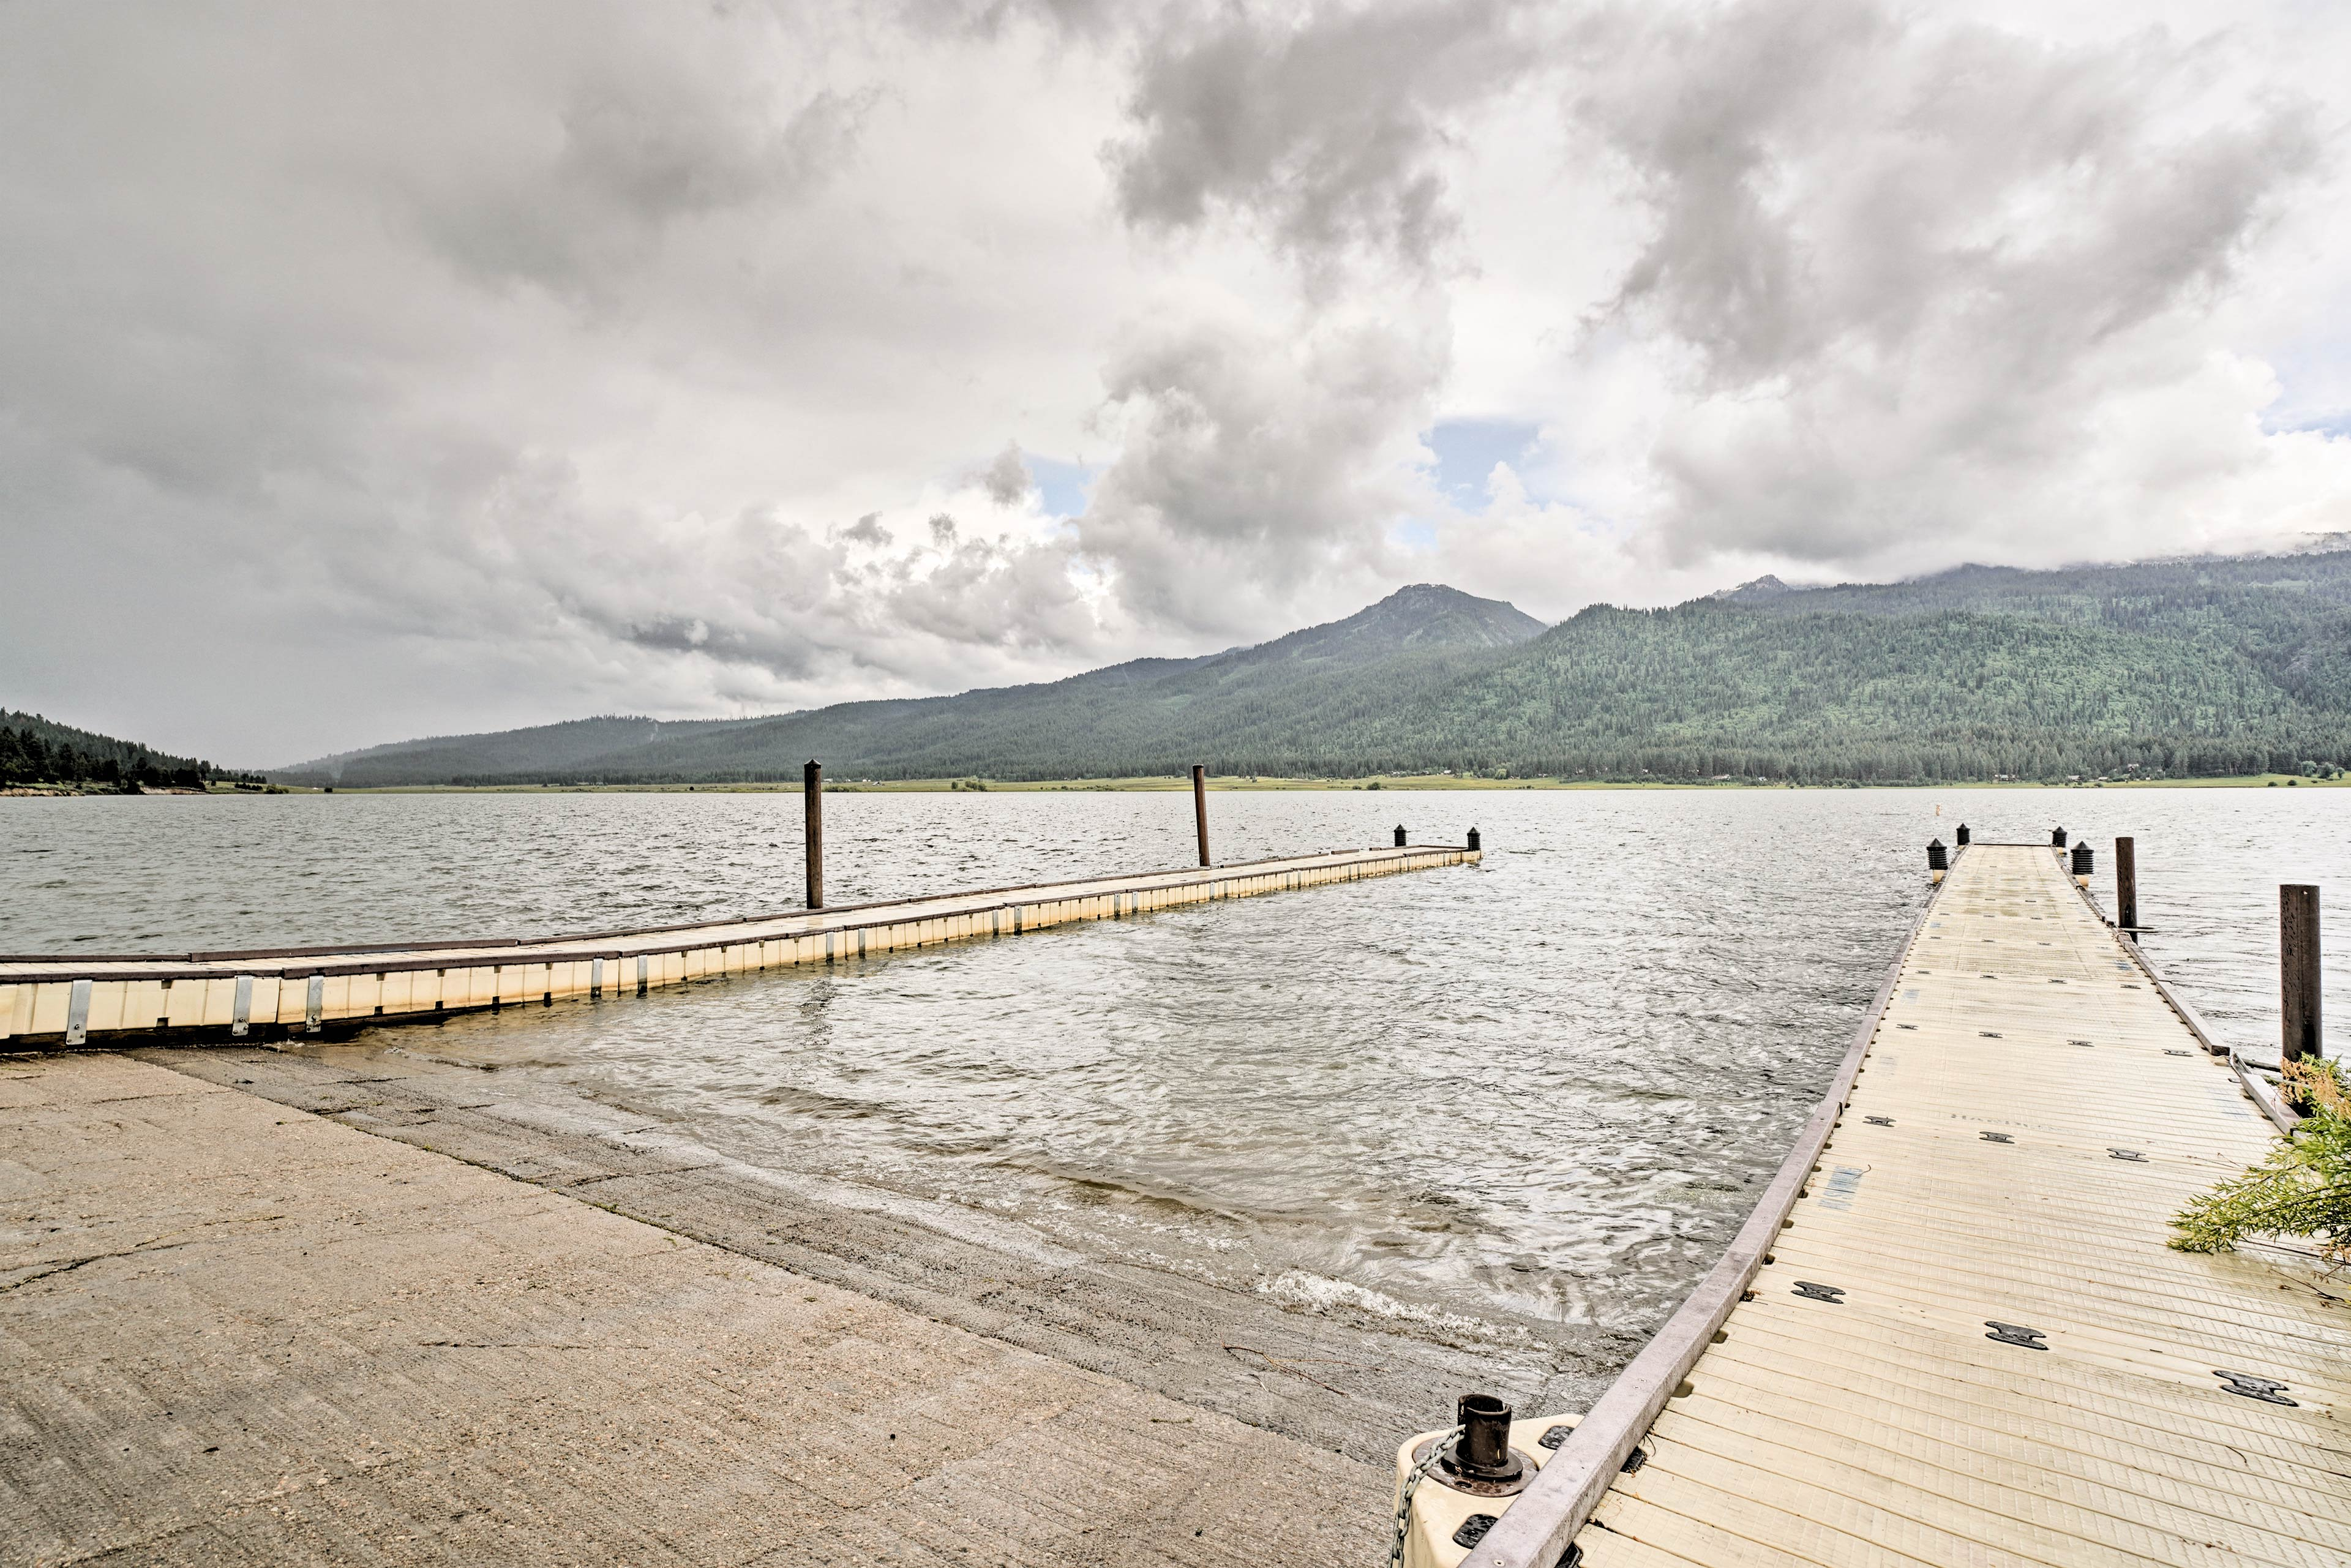 Bring along the boat to take full advantage of Lake Cascade's activities!